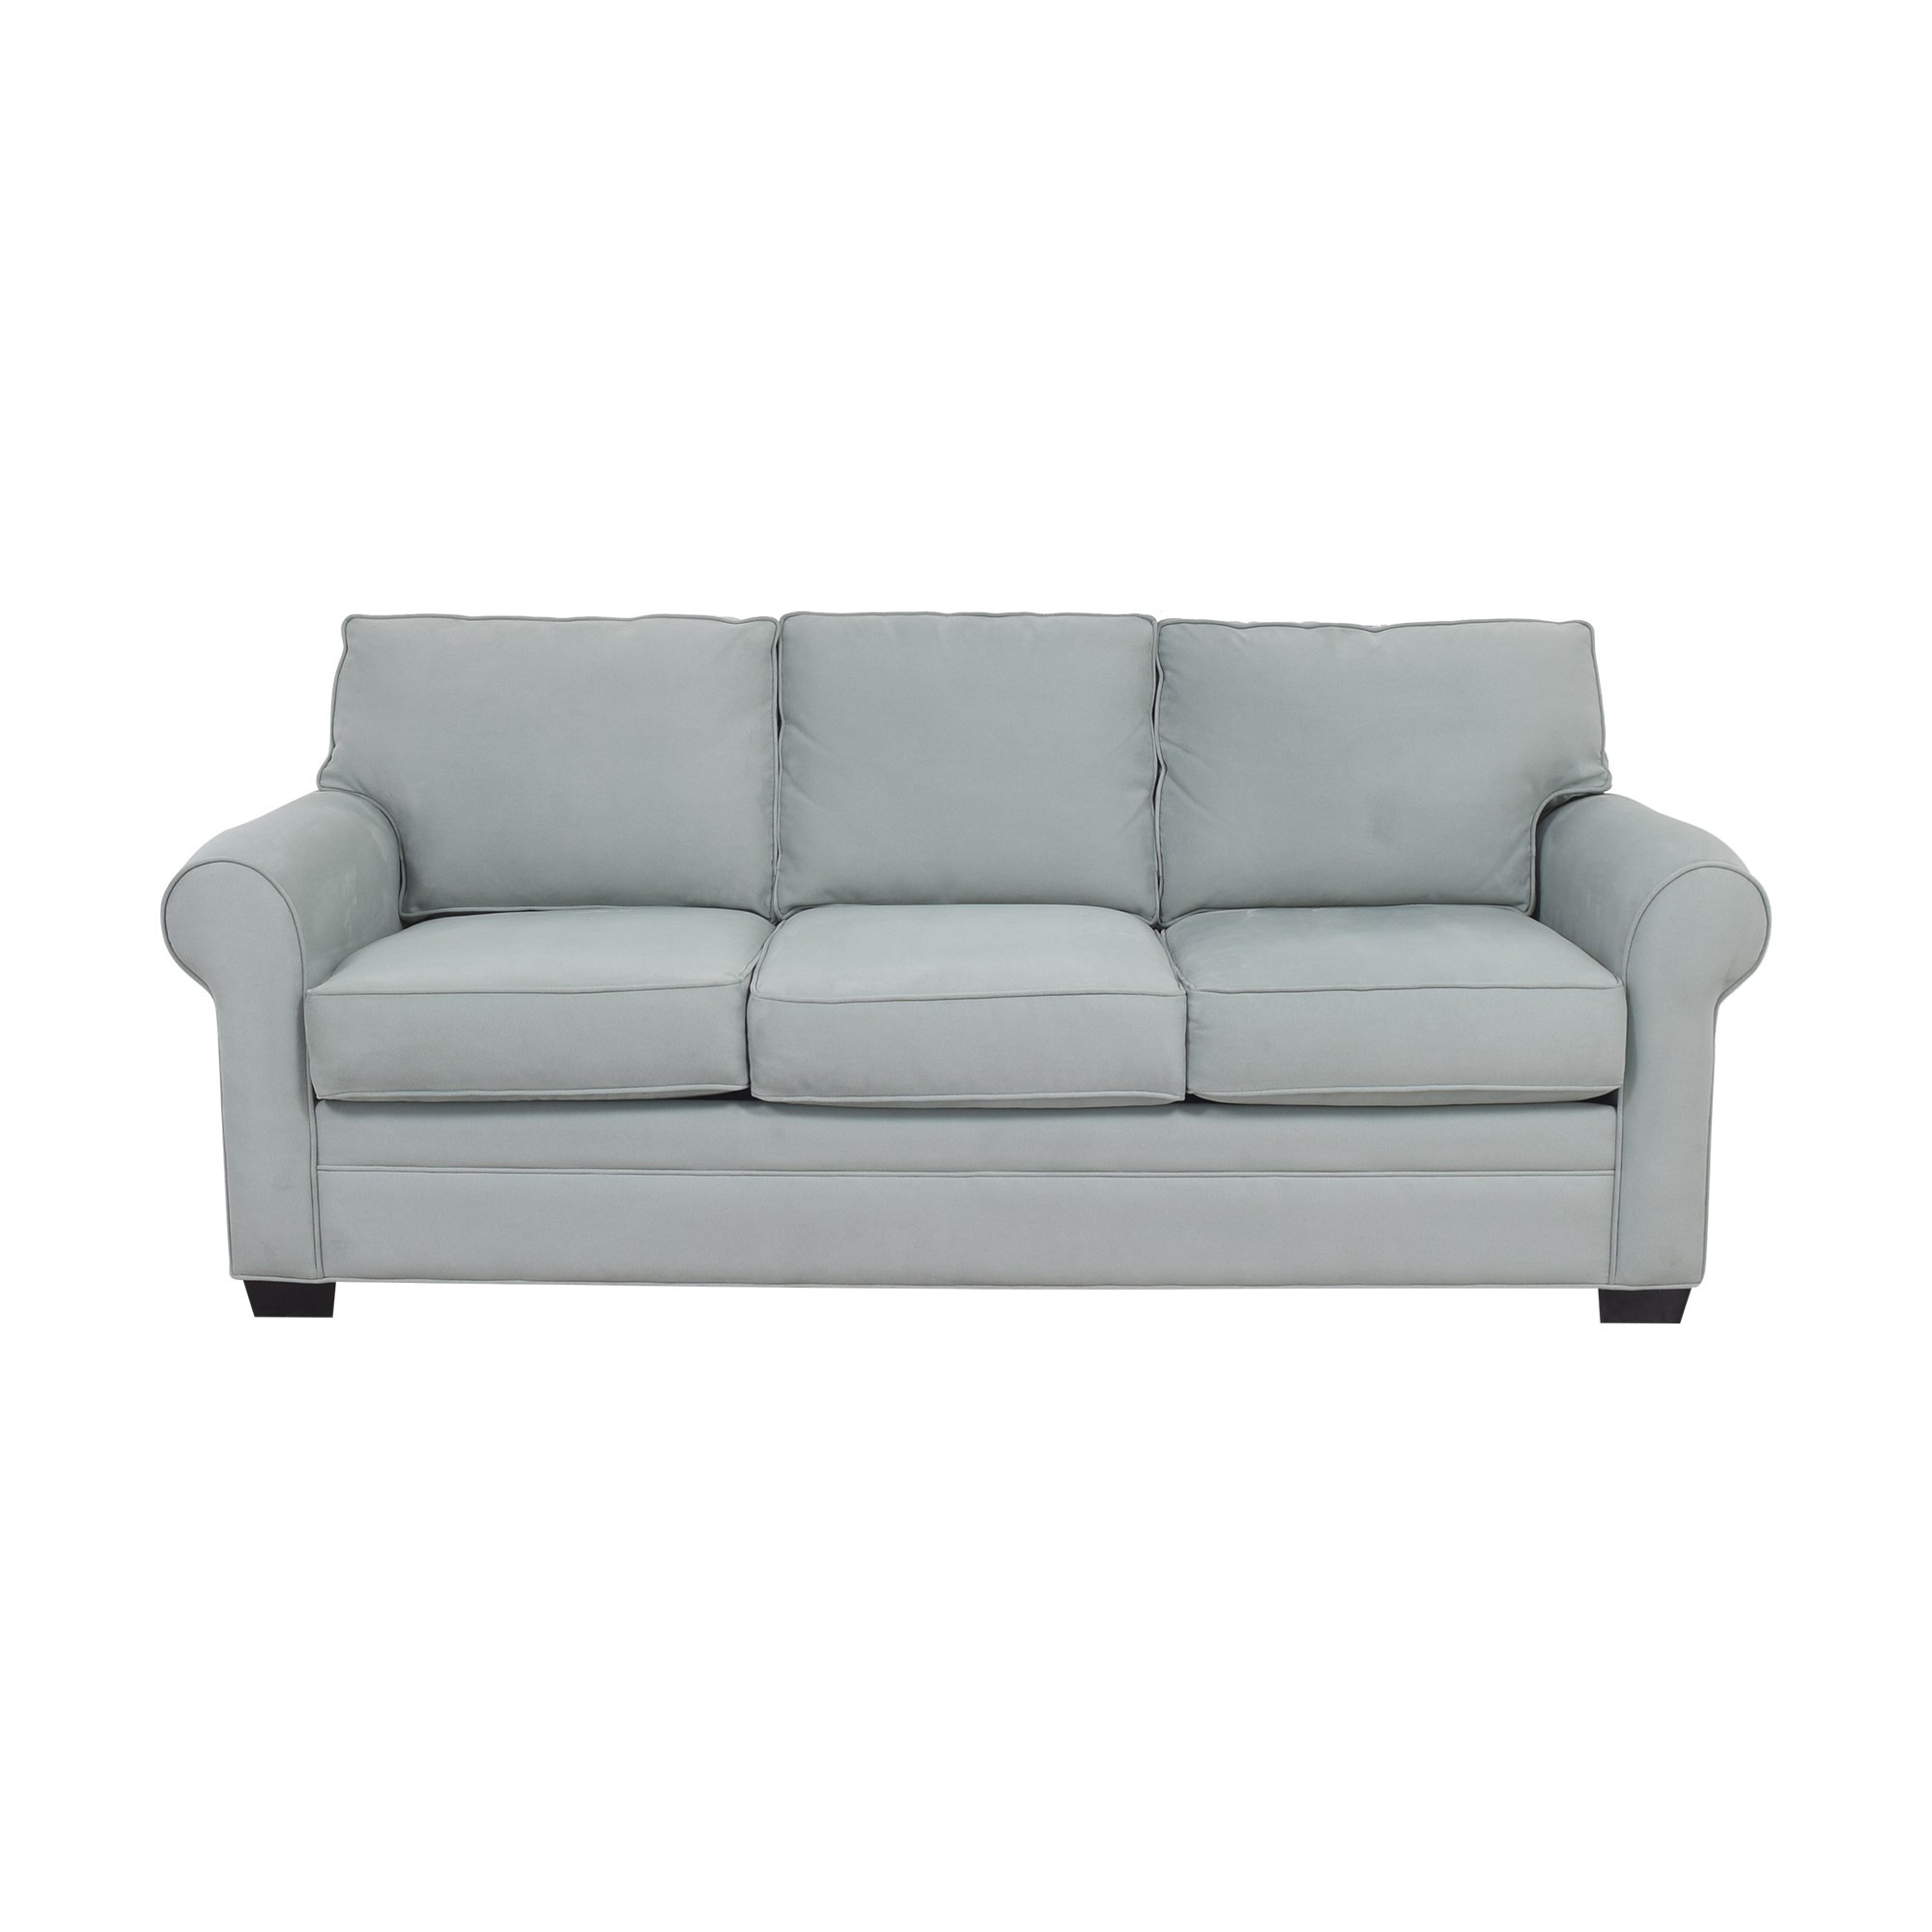 Raymour & Flanigan Cindy Crawford Home Roll Arm Sofa / Classic Sofas